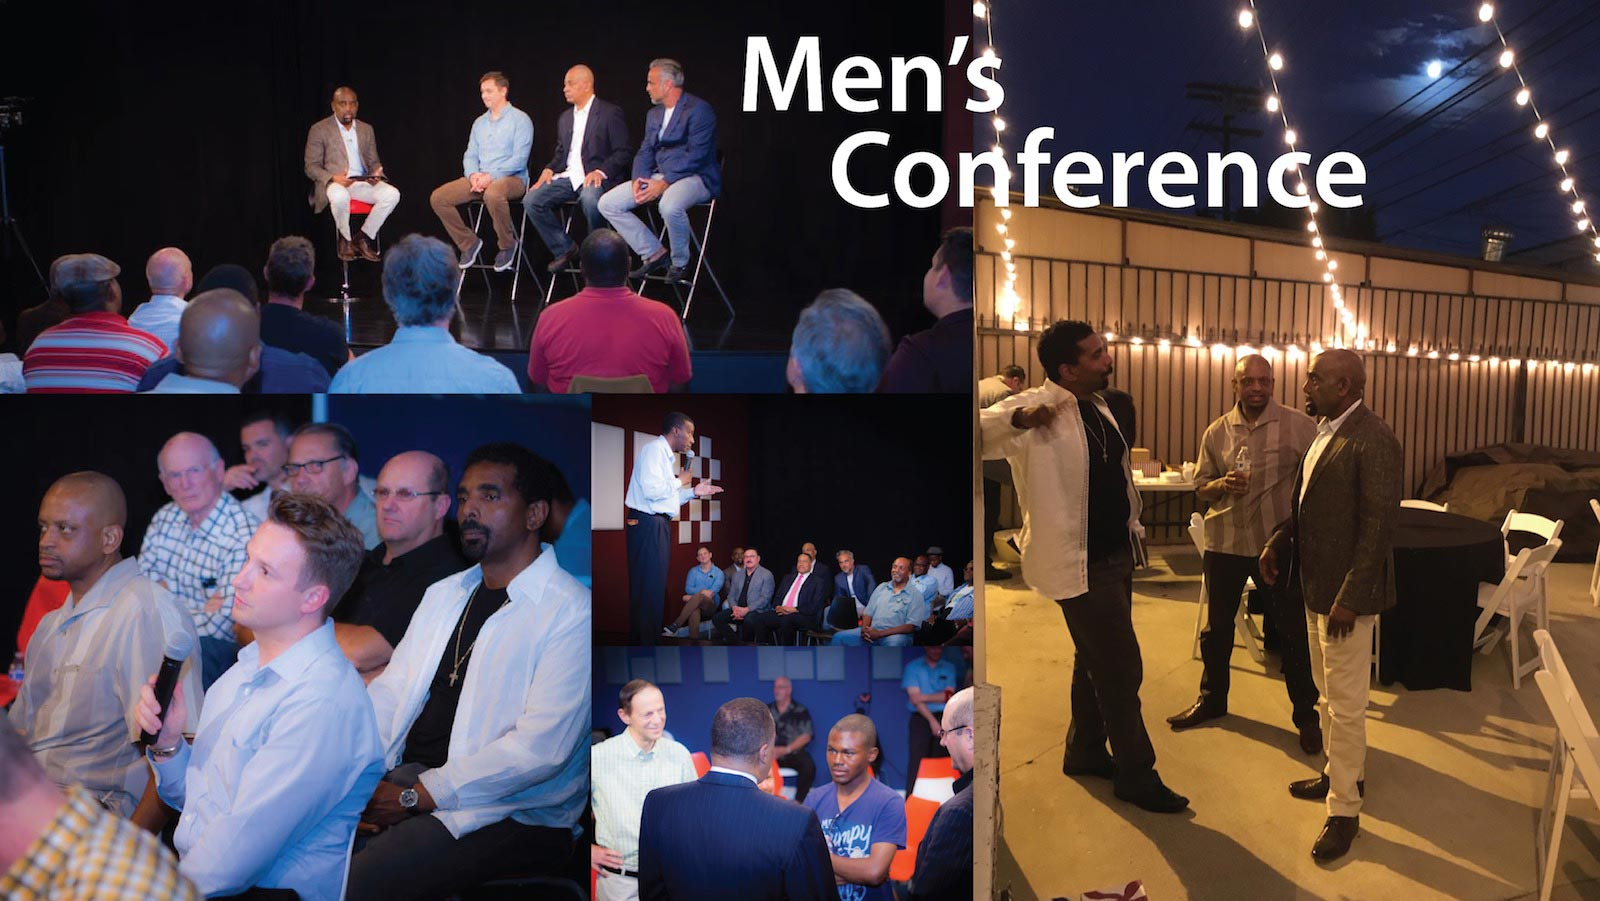 Mens Conference Collage